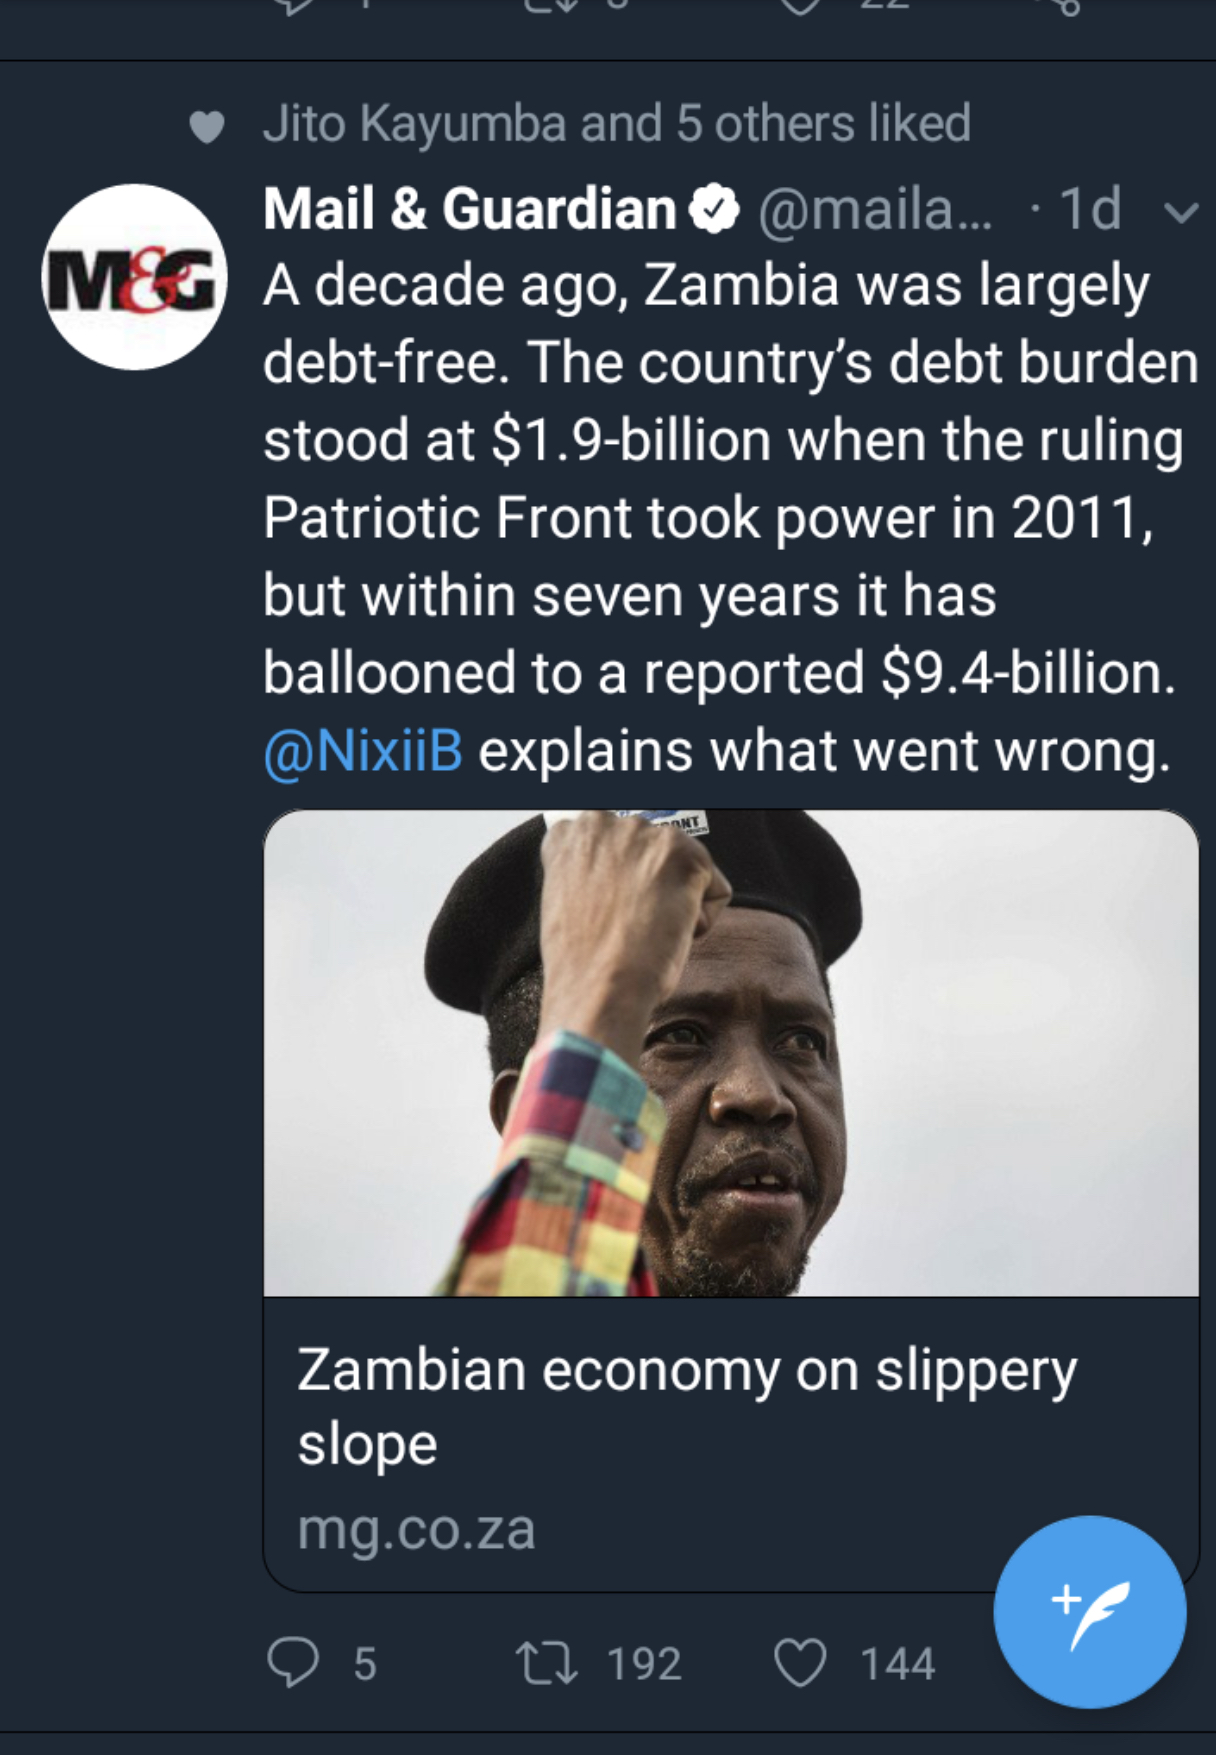 Zambian economy on slippery slope